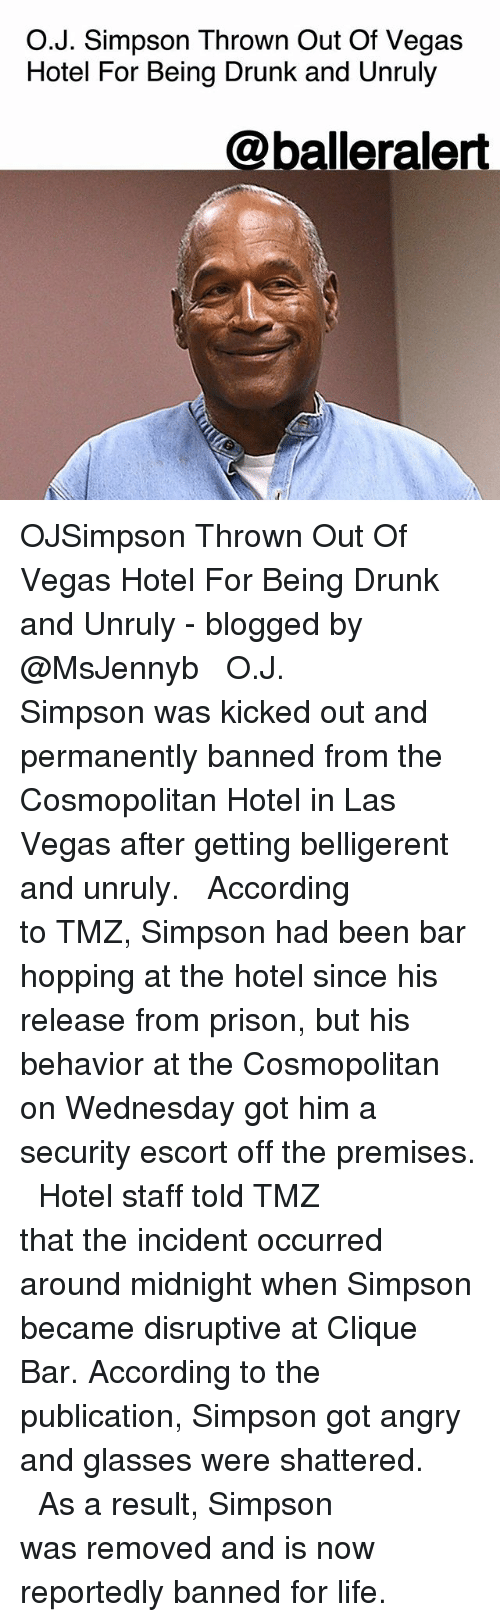 Cosmopolitan: O.J. Simpson Thrown Out Of Vegas  Hotel For Being Drunk and Unruly  @balleralert OJSimpson Thrown Out Of Vegas Hotel For Being Drunk and Unruly - blogged by @MsJennyb ⠀⠀⠀⠀⠀⠀⠀ ⠀⠀⠀⠀⠀⠀⠀ O.J. Simpson was kicked out and permanently banned from the Cosmopolitan Hotel in Las Vegas after getting belligerent and unruly. ⠀⠀⠀⠀⠀⠀⠀ ⠀⠀⠀⠀⠀⠀⠀ According to TMZ, Simpson had been bar hopping at the hotel since his release from prison, but his behavior at the Cosmopolitan on Wednesday got him a security escort off the premises. ⠀⠀⠀⠀⠀⠀⠀ ⠀⠀⠀⠀⠀⠀⠀ Hotel staff told TMZ that the incident occurred around midnight when Simpson became disruptive at Clique Bar. According to the publication, Simpson got angry and glasses were shattered. ⠀⠀⠀⠀⠀⠀⠀ ⠀⠀⠀⠀⠀⠀⠀ As a result, Simpson was removed and is now reportedly banned for life.